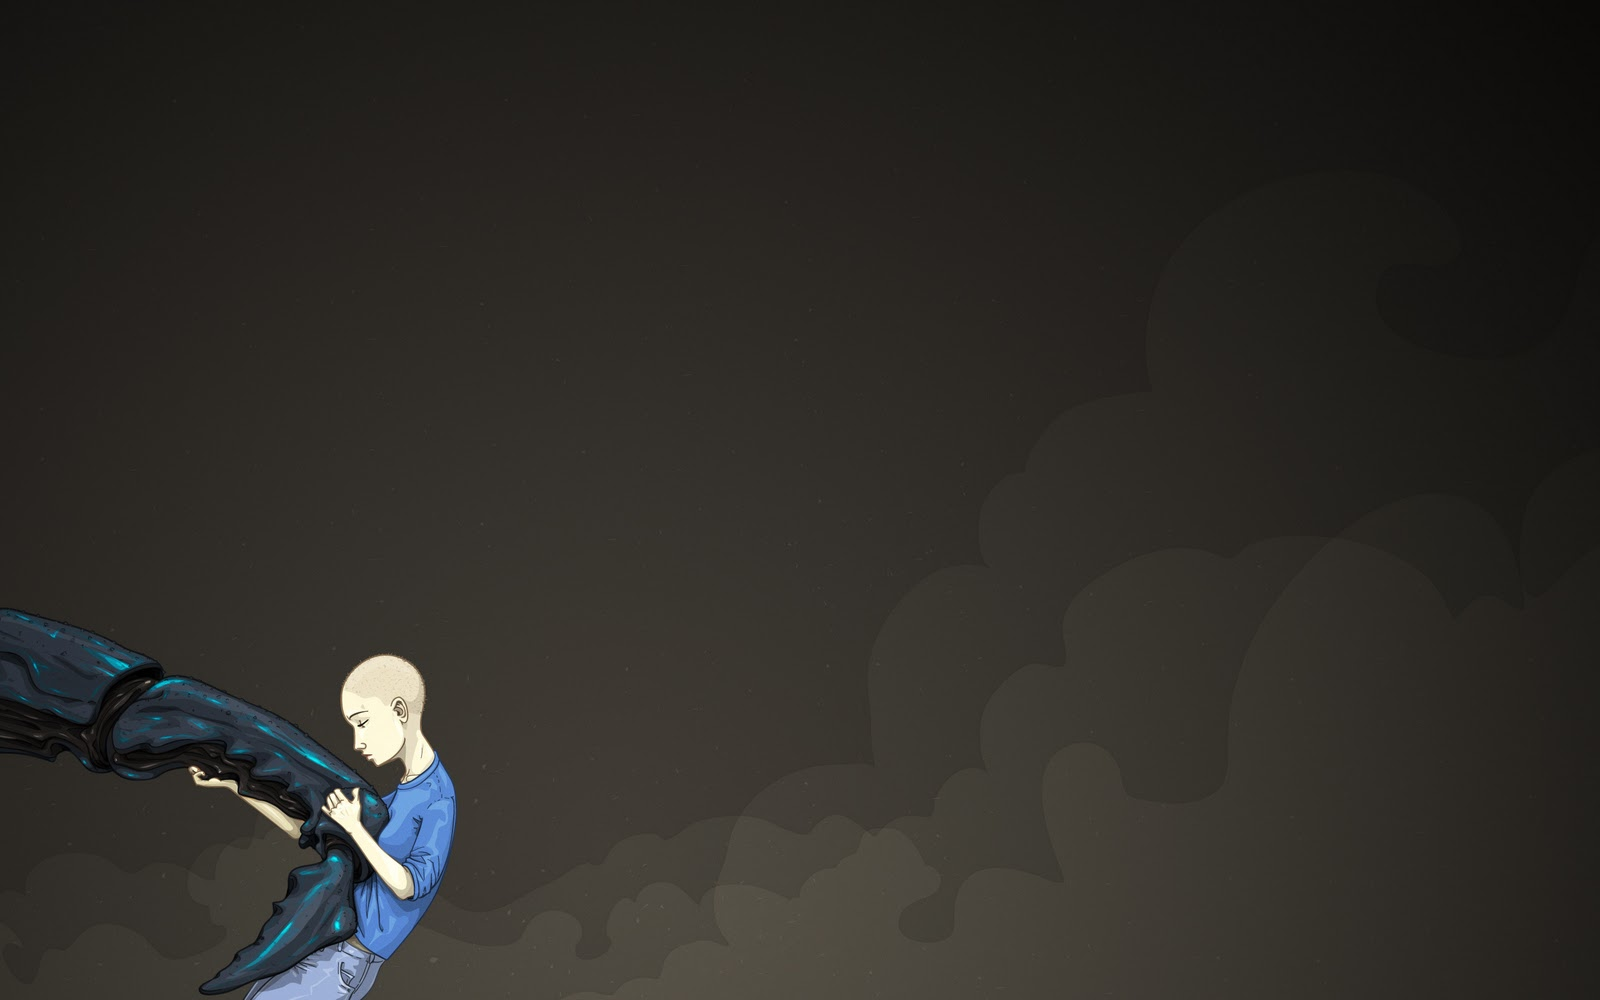 Cool guy anime wallpaper free hd wallpaper pic mch054093 dzbc download voltagebd Choice Image